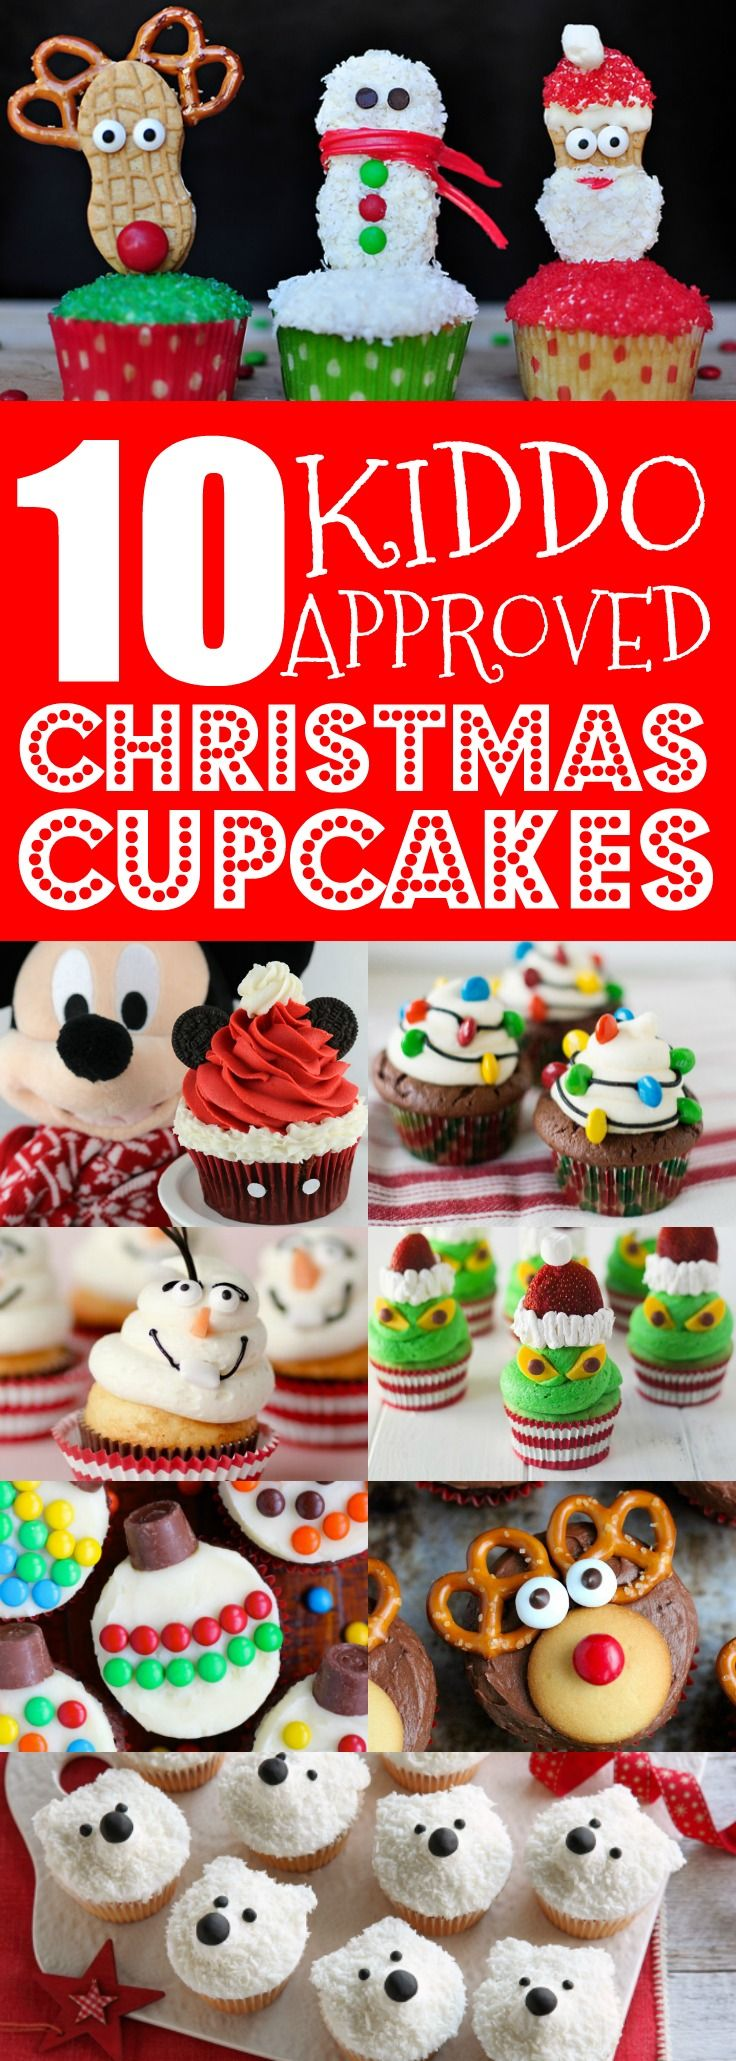 These Christmas cupcake ideas for kids are so CUTE!! I'm so happy I found these EASY holiday cupcake recipes & will love decorating these with my children! Now I have something AMAZING to bring for school holiday parties! Definitely pinning!